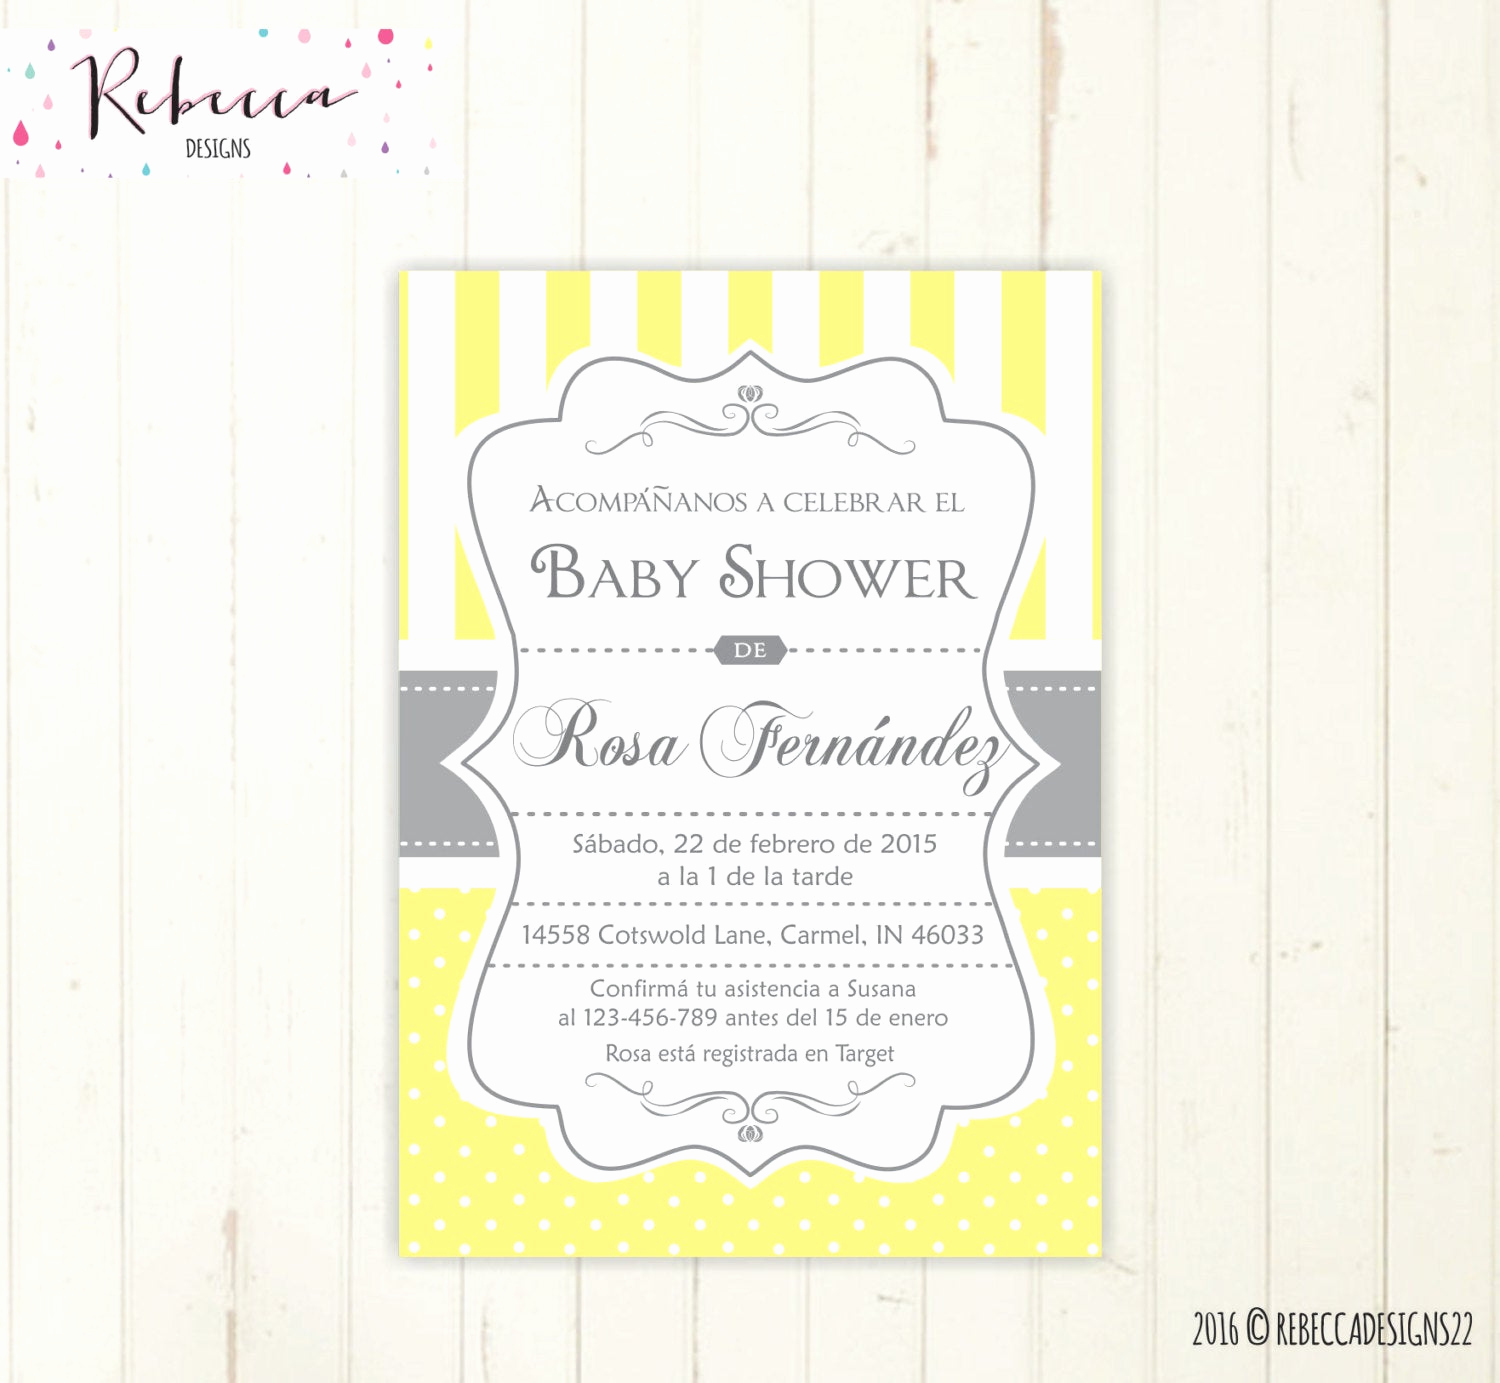 Spanish Baby Shower Invitation Inspirational Baby Shower Invitation Spanish Boy or Girl Baby Shower Spanish